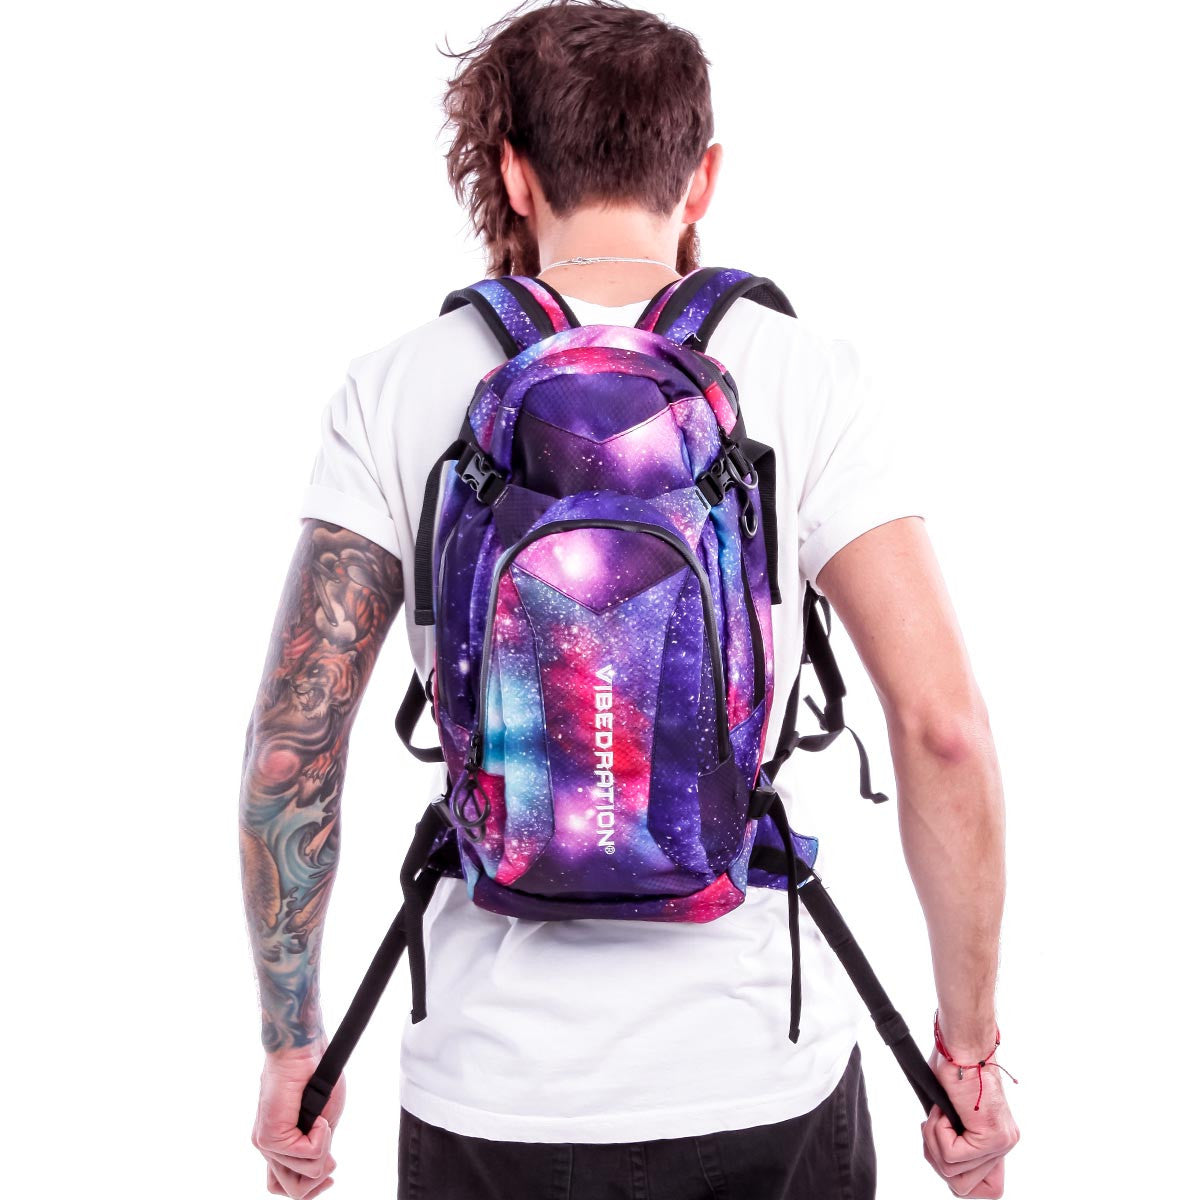 Male wearing large Galaxy hydration pack